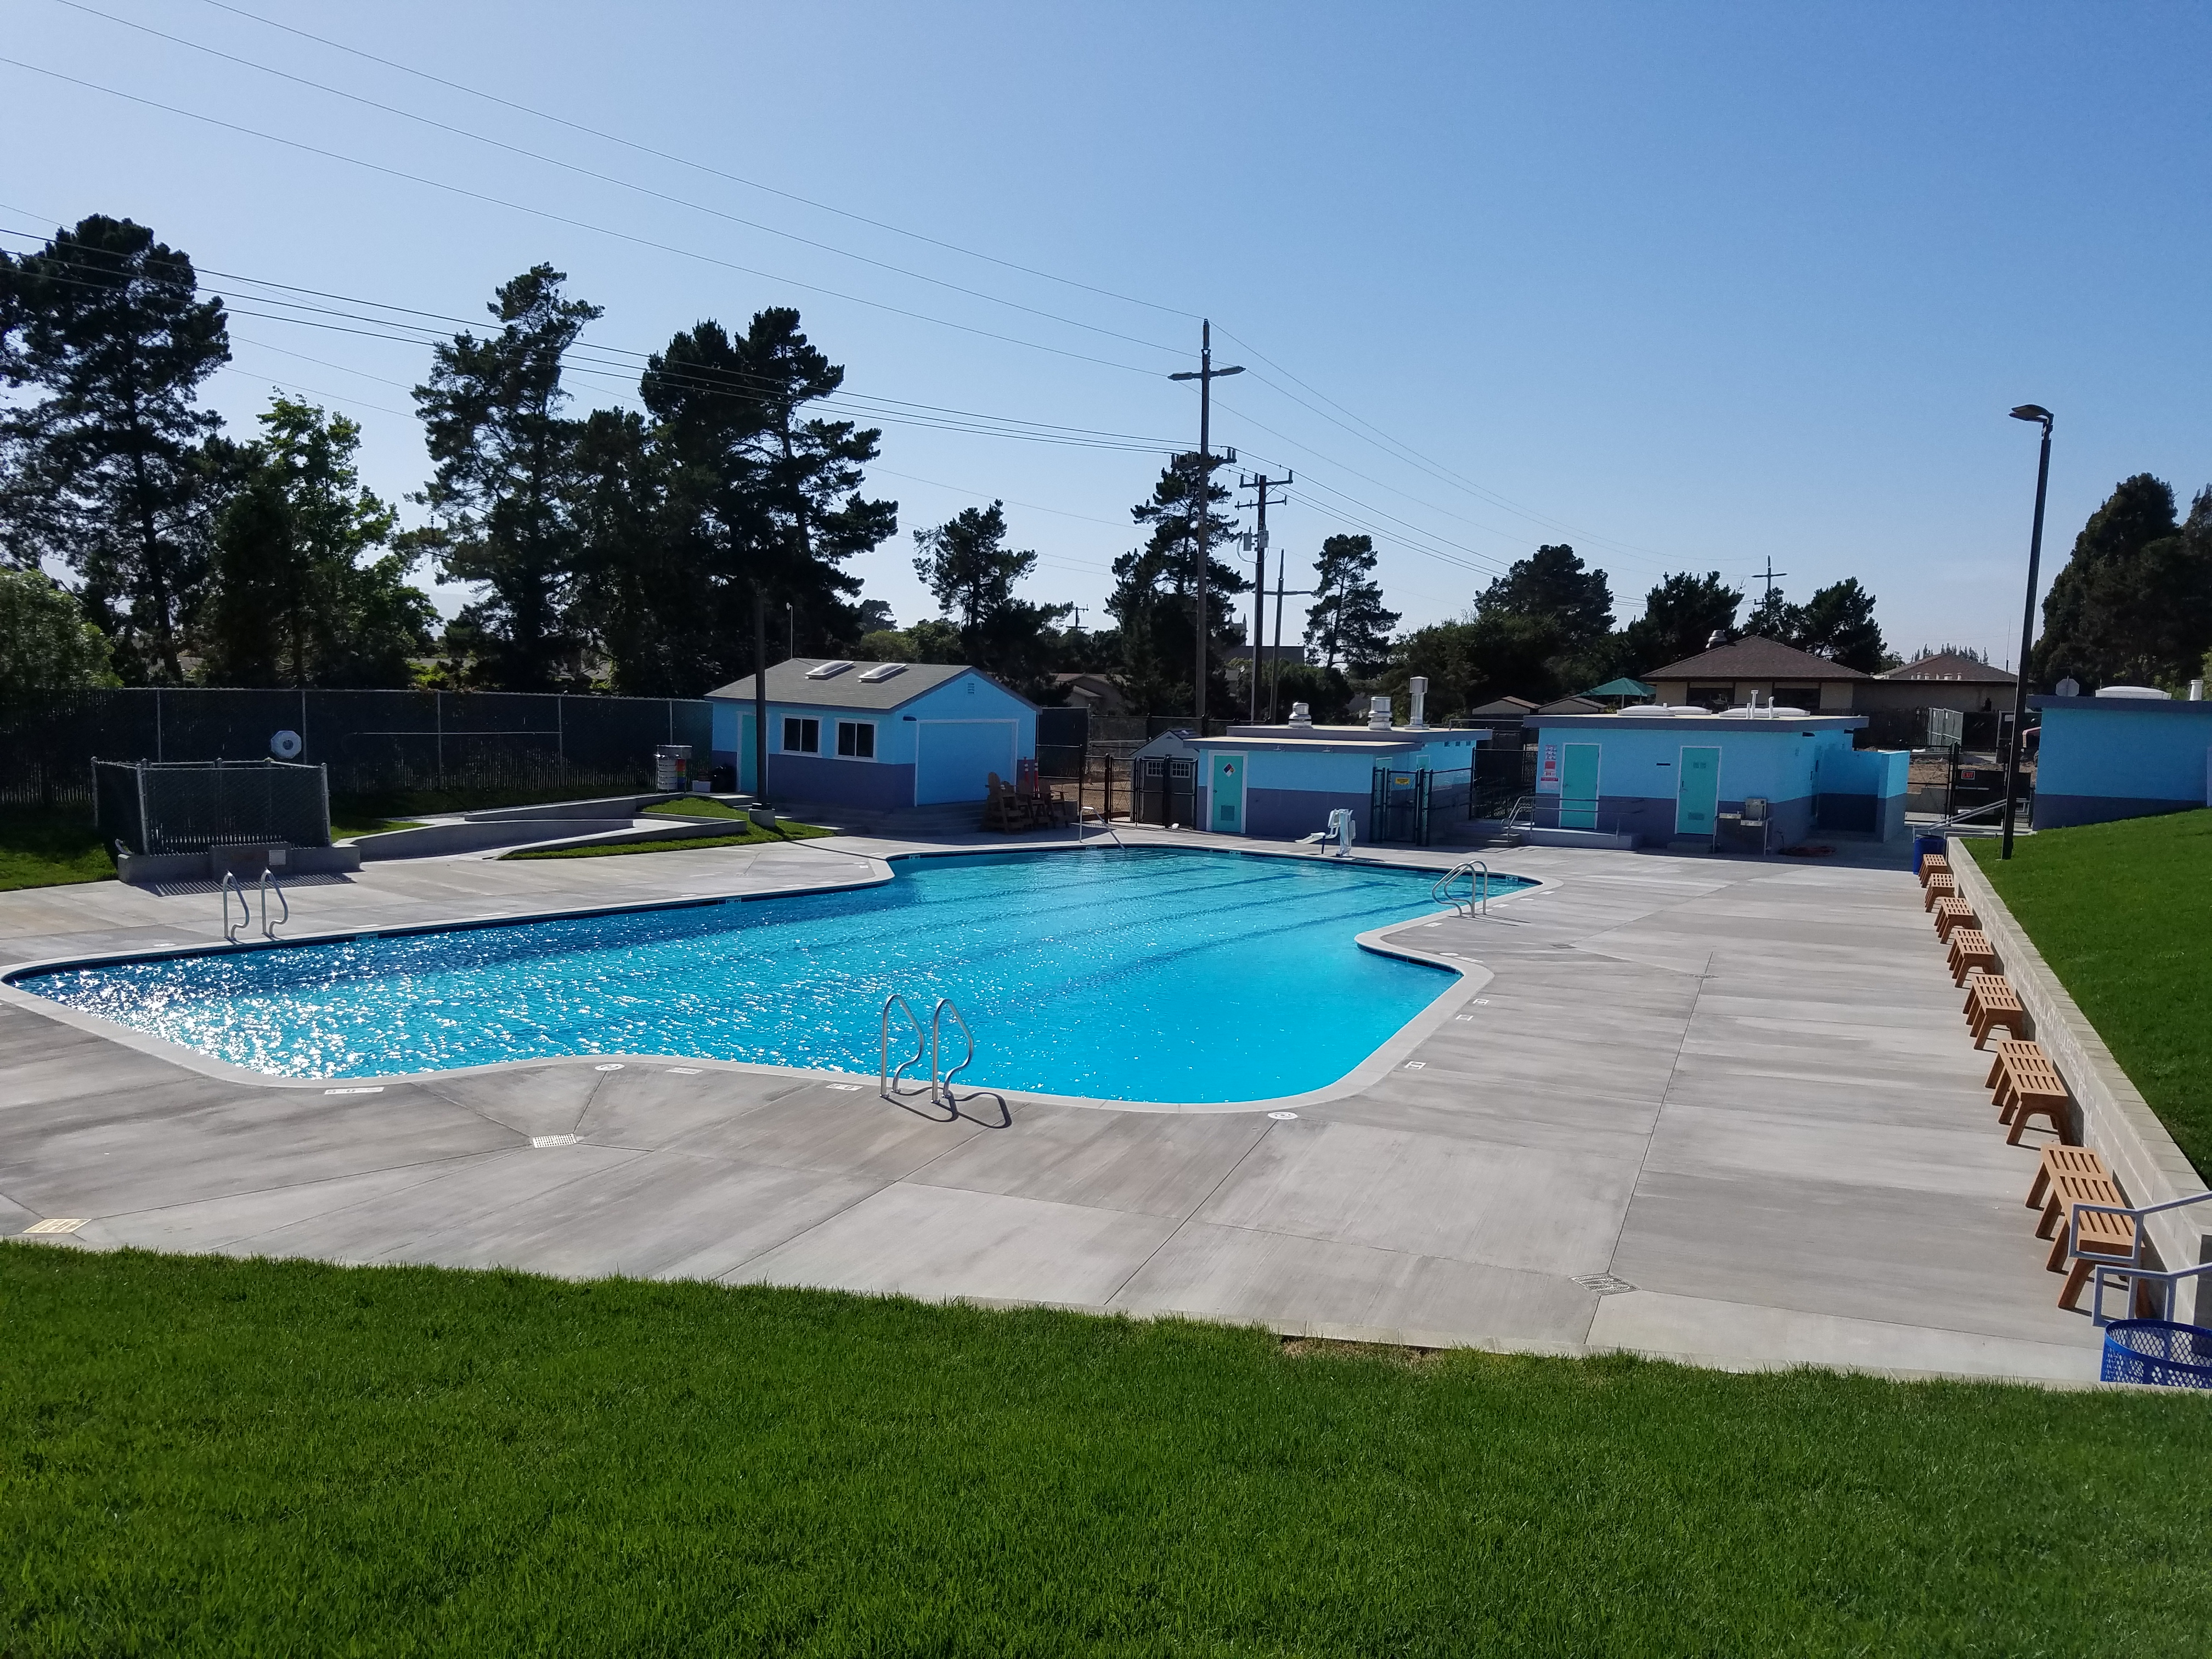 Photo of Gonzales pool